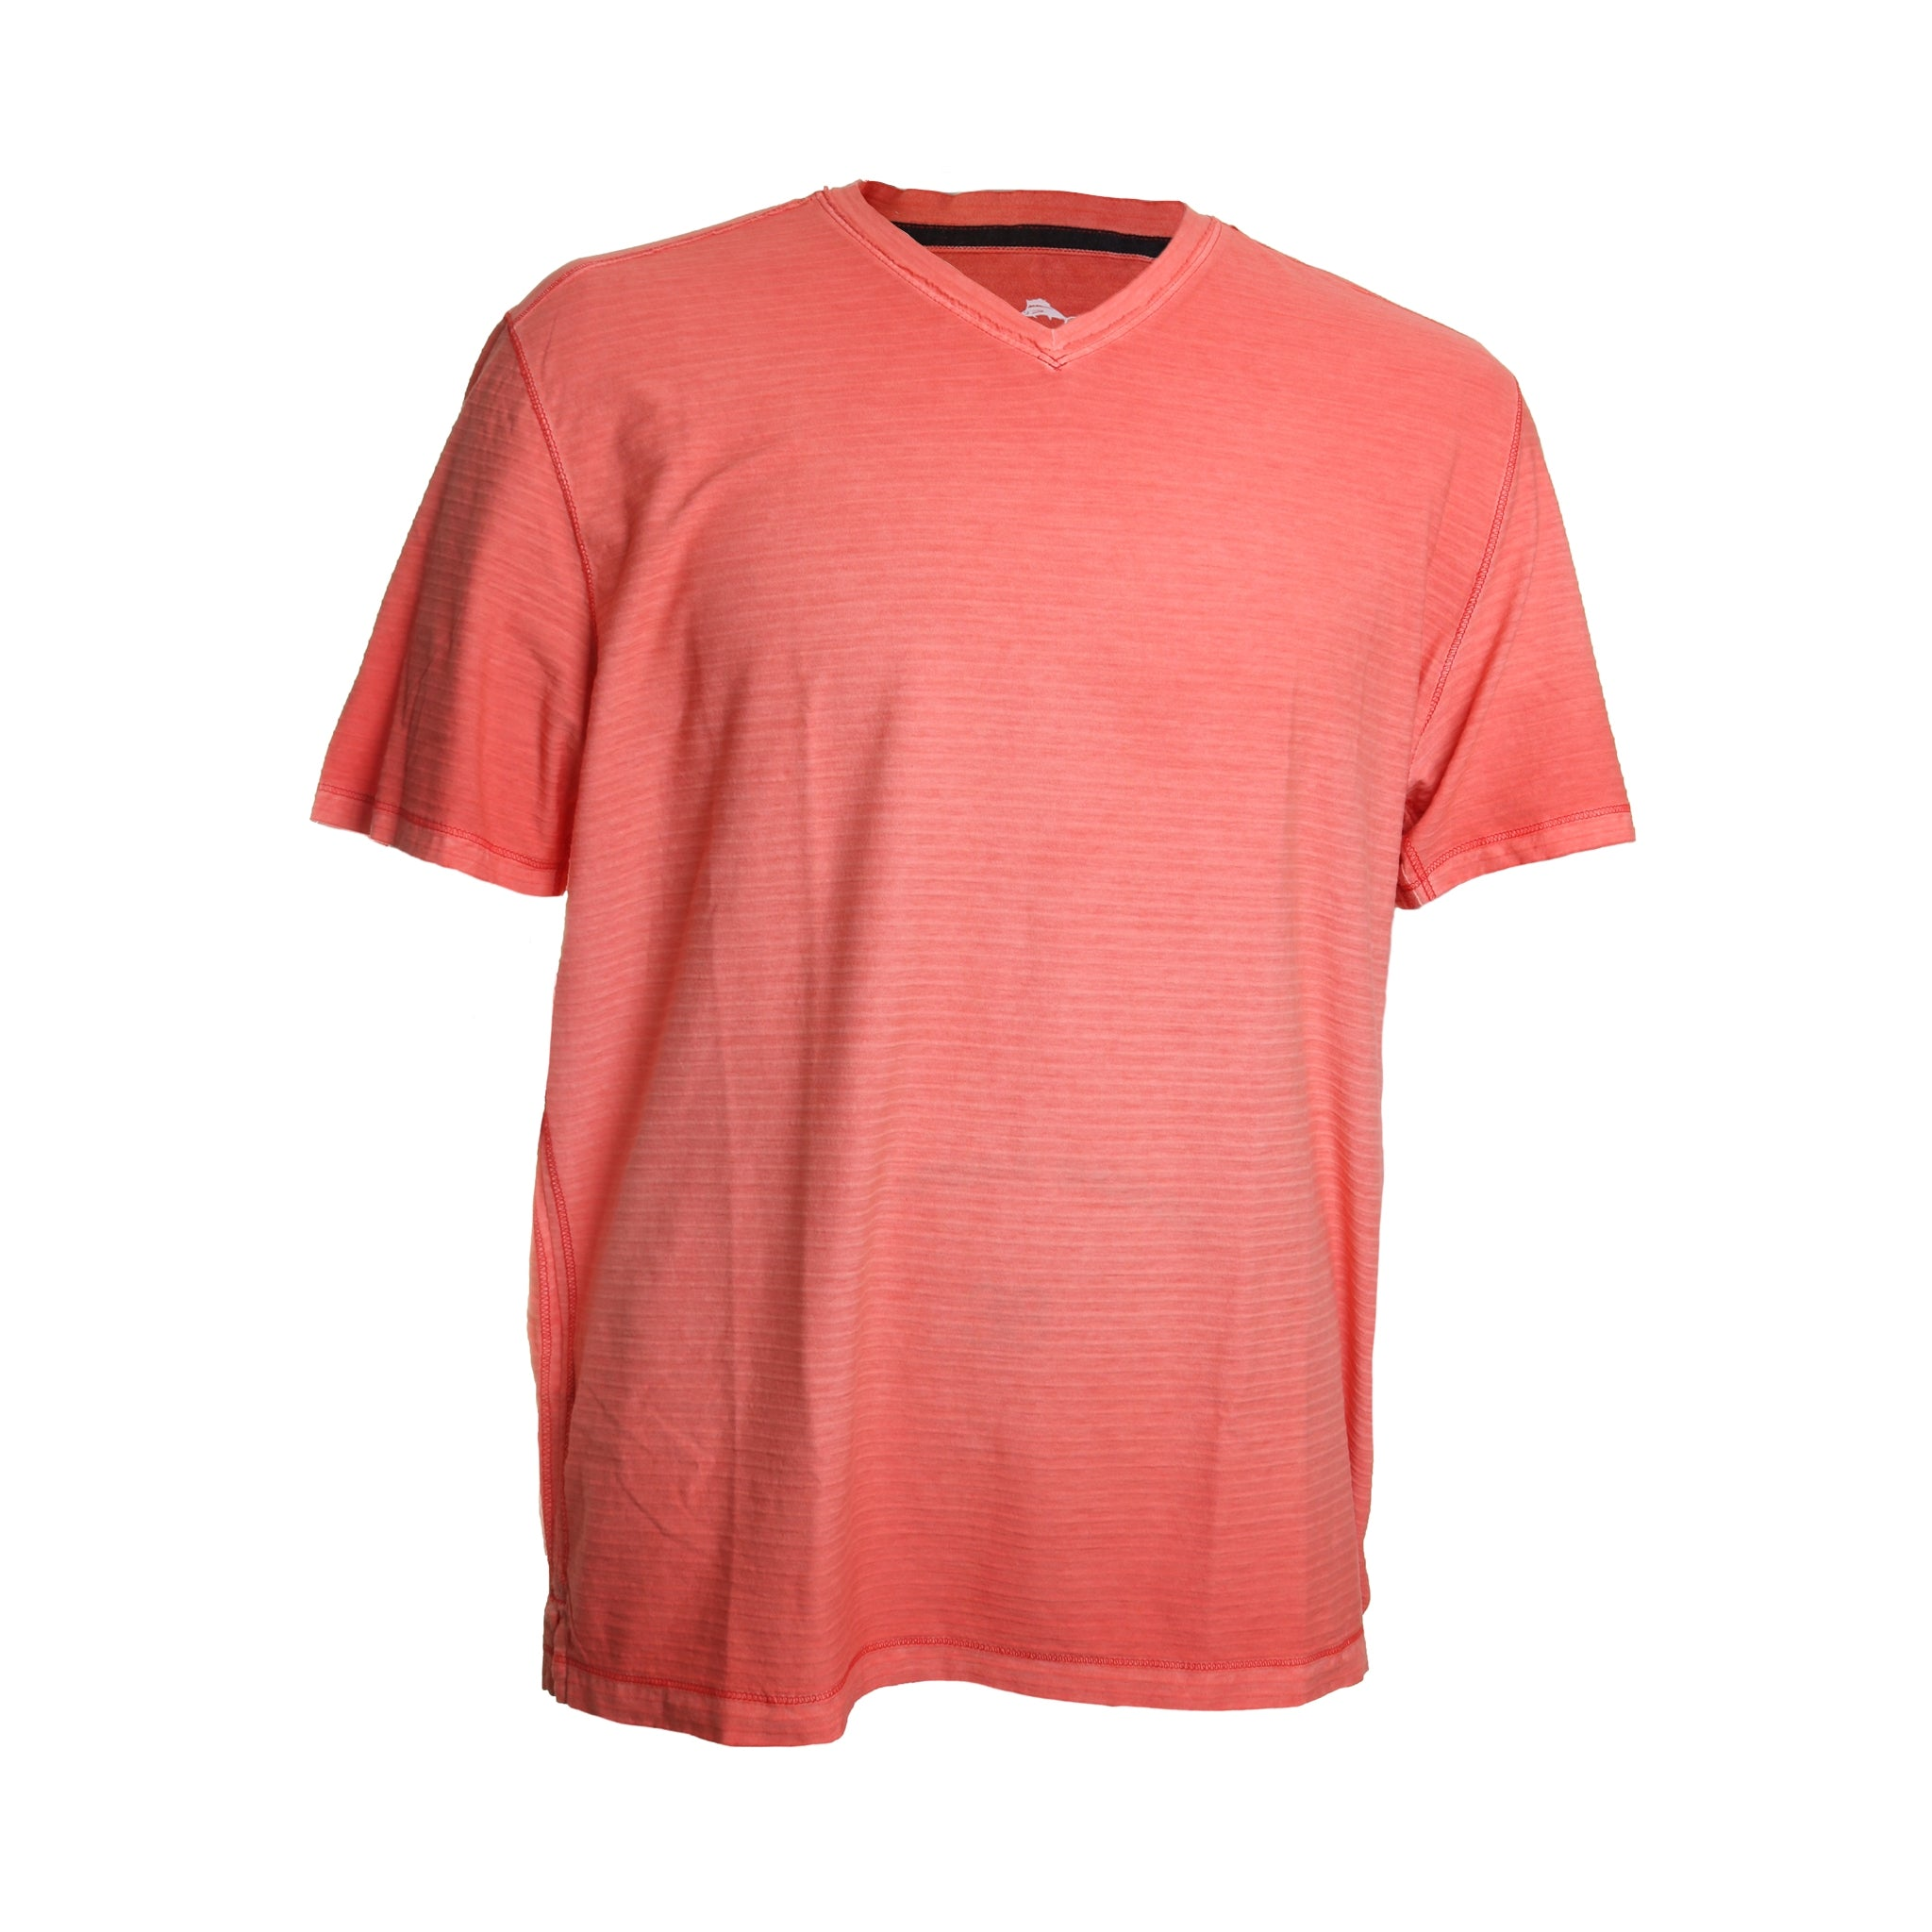 Cirrus Coast Short Sleeve V Neck Tee Shirt